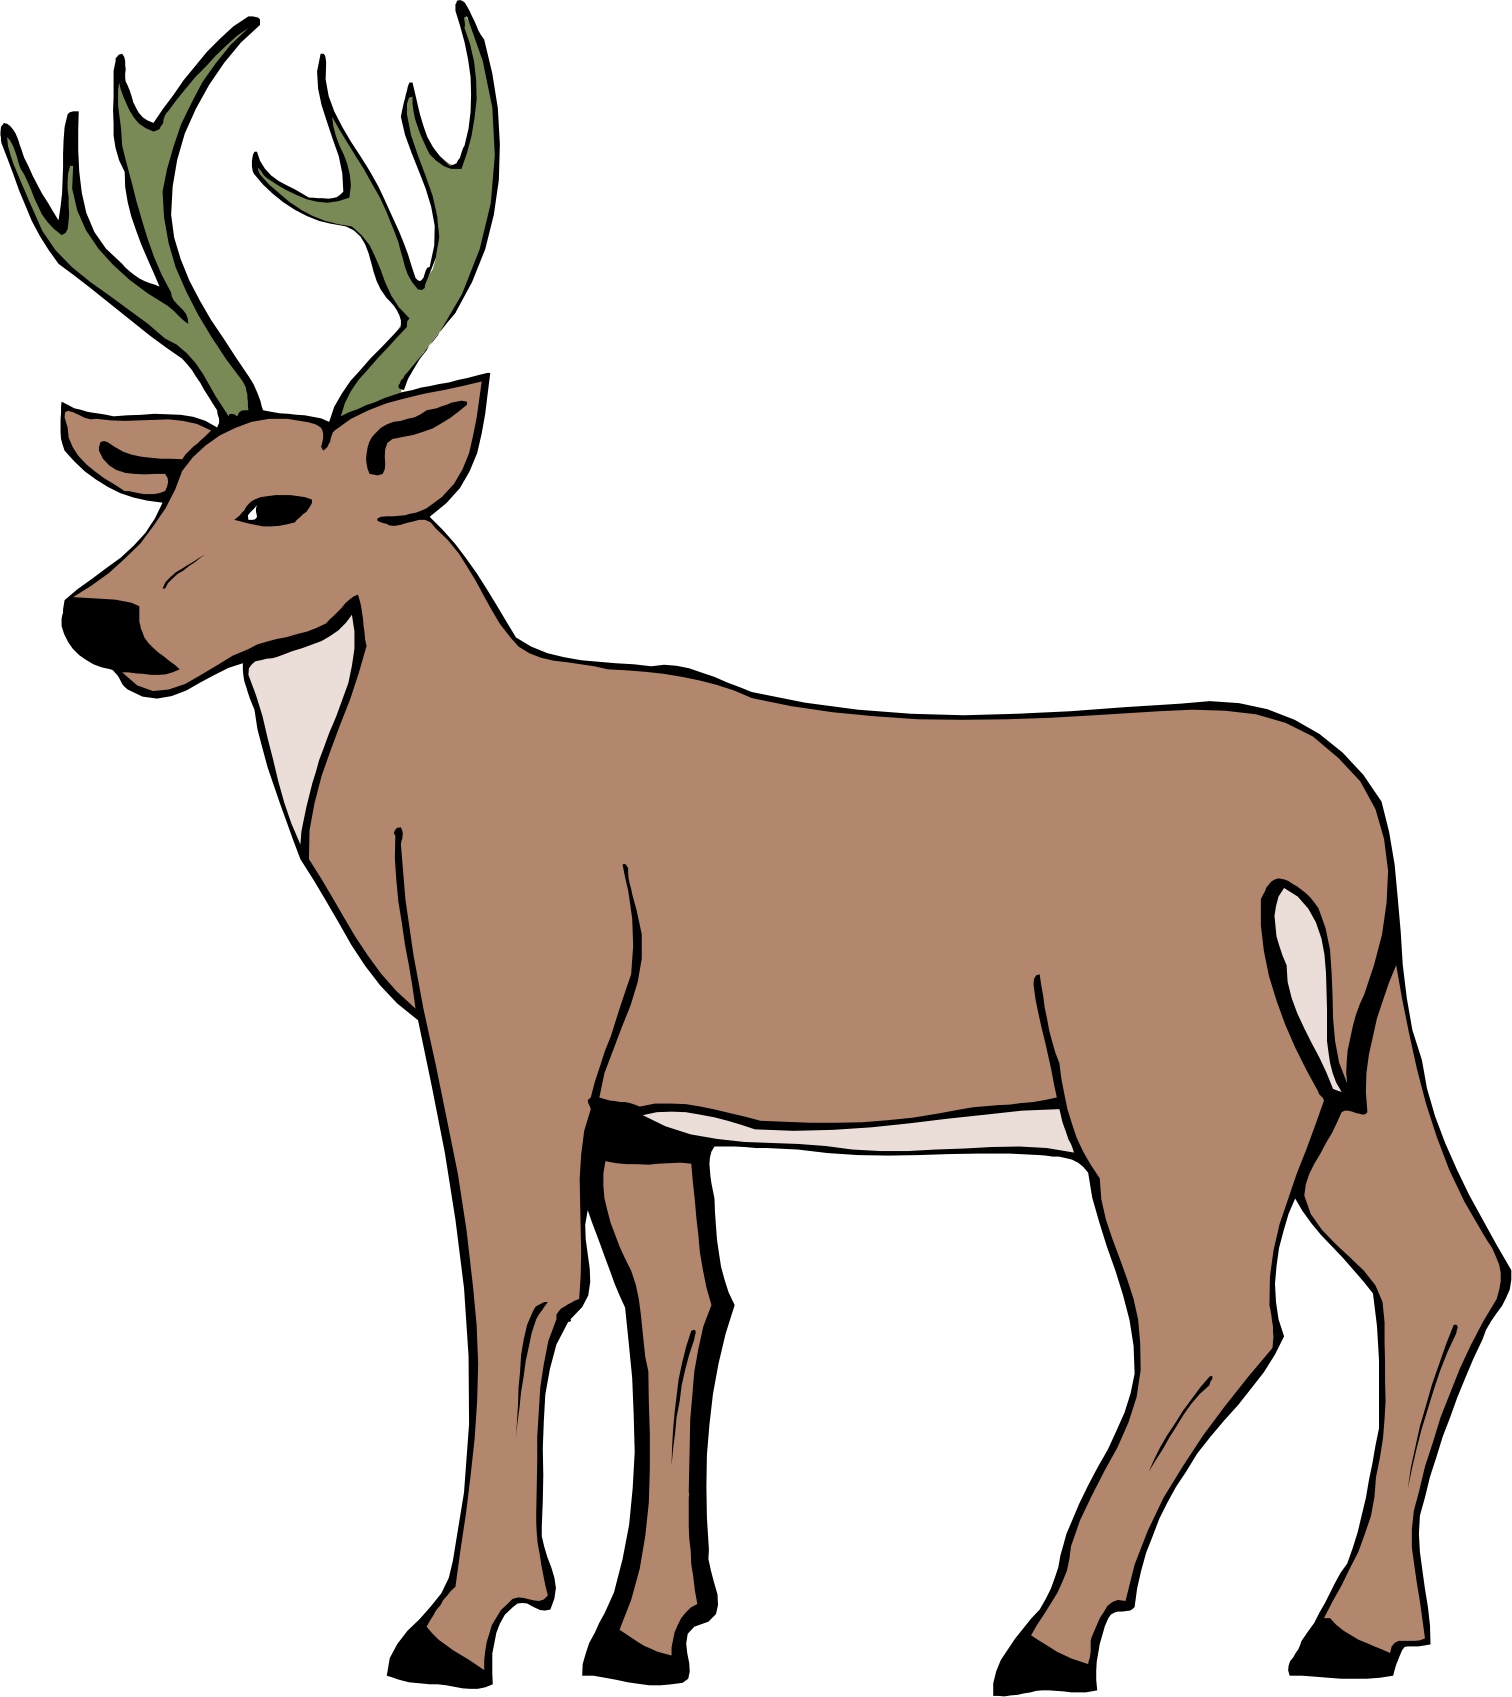 1512x1697 Cartoon Drawing Of A Deer Cartoon Deer Cartoon Deer Page 2